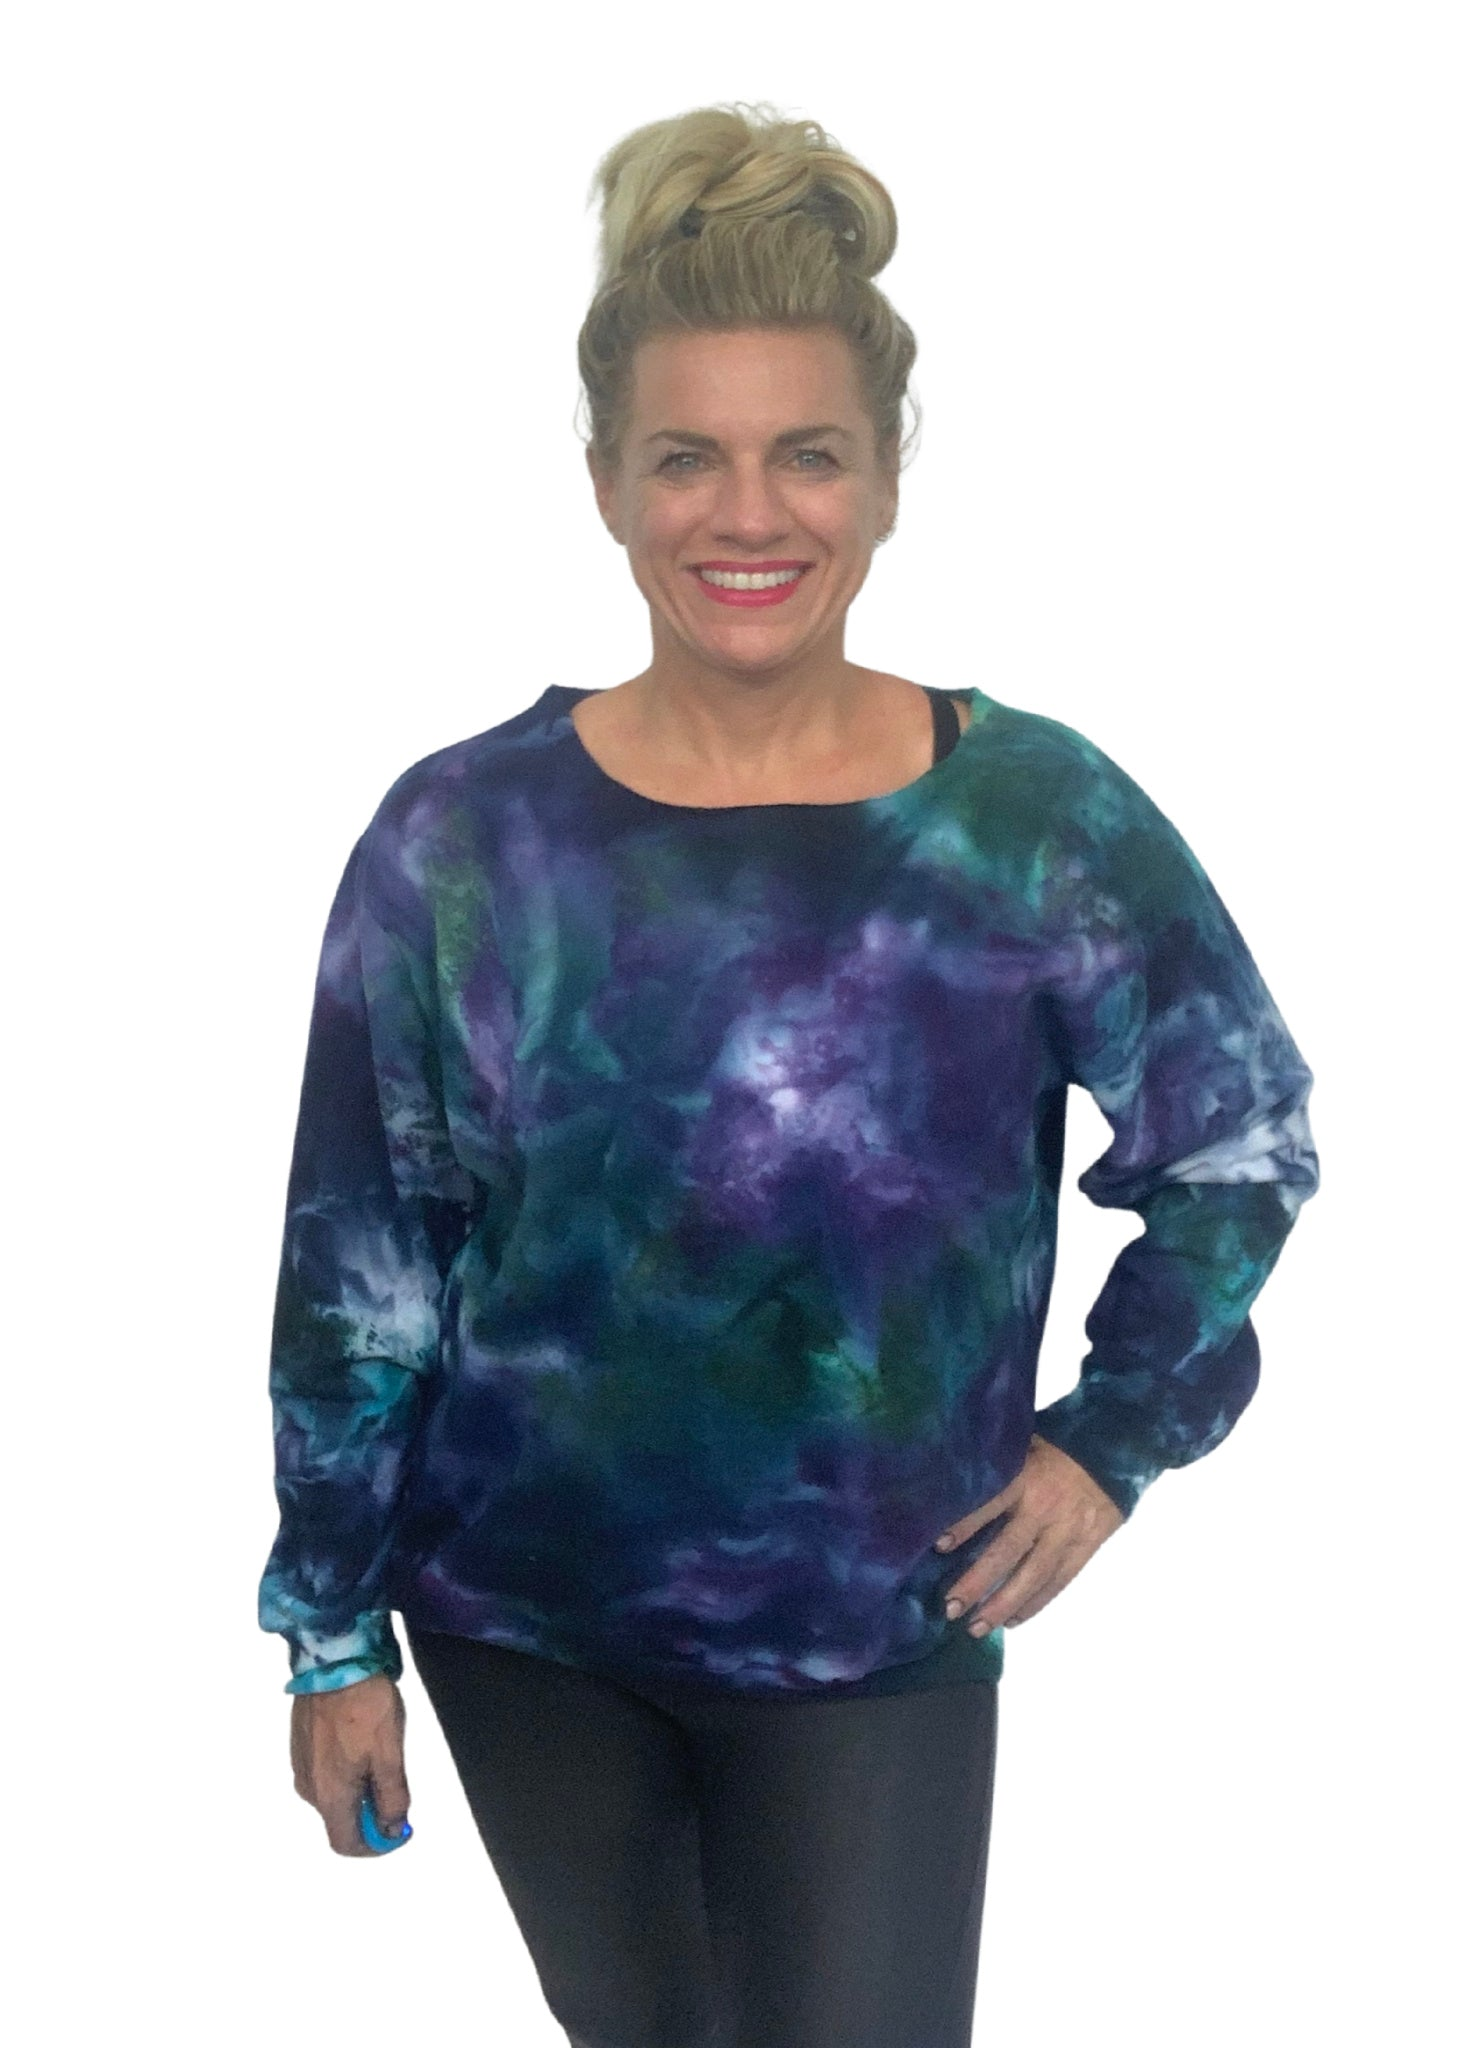 Hand Dyed Perfect Sweatshirt in Teals & Purples - Limited Release